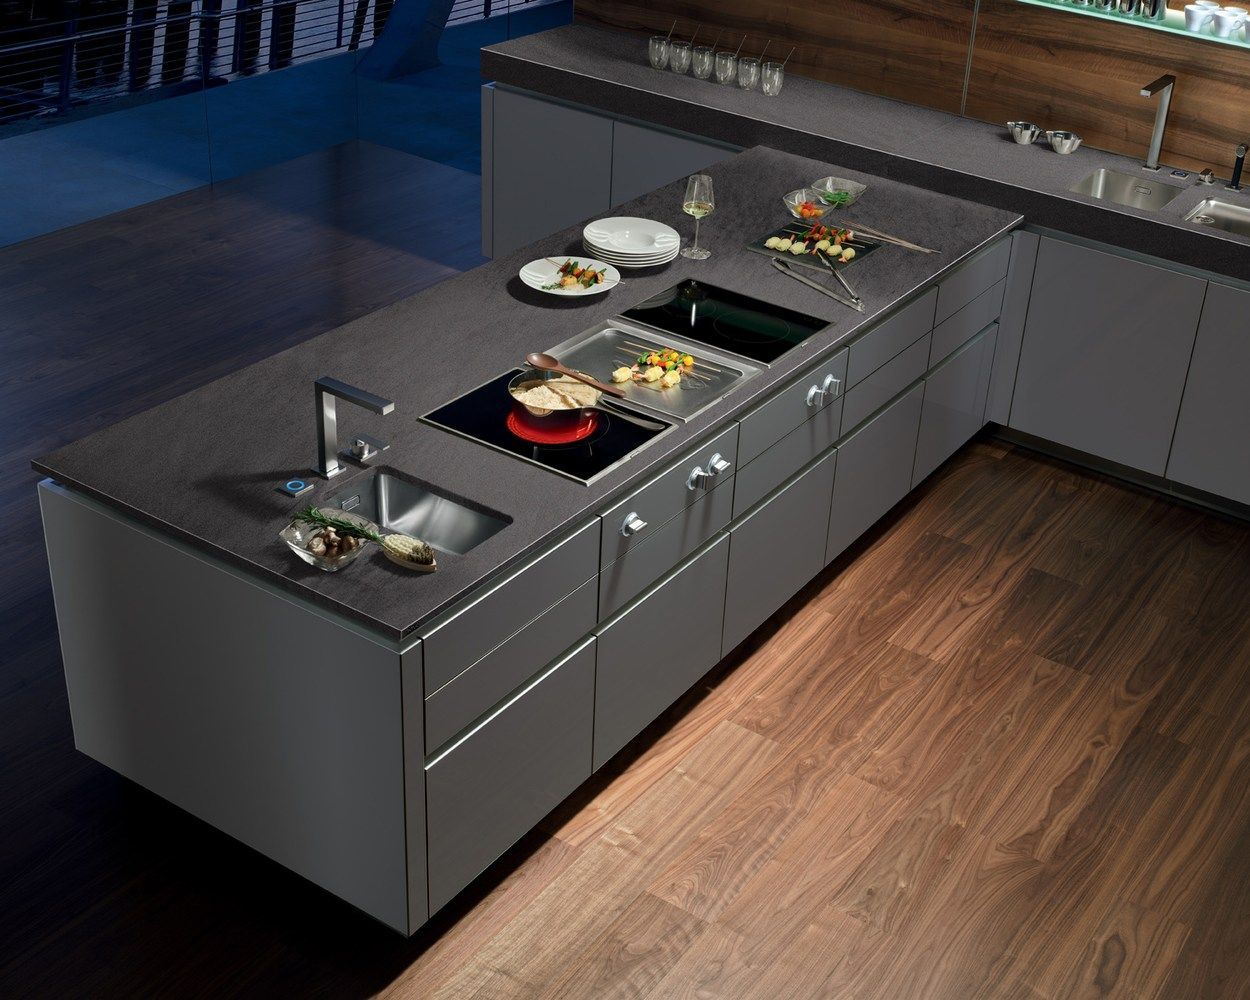 Anthracite grey glass by intuo | Richard\'s Pins - Latest & Favourite ...